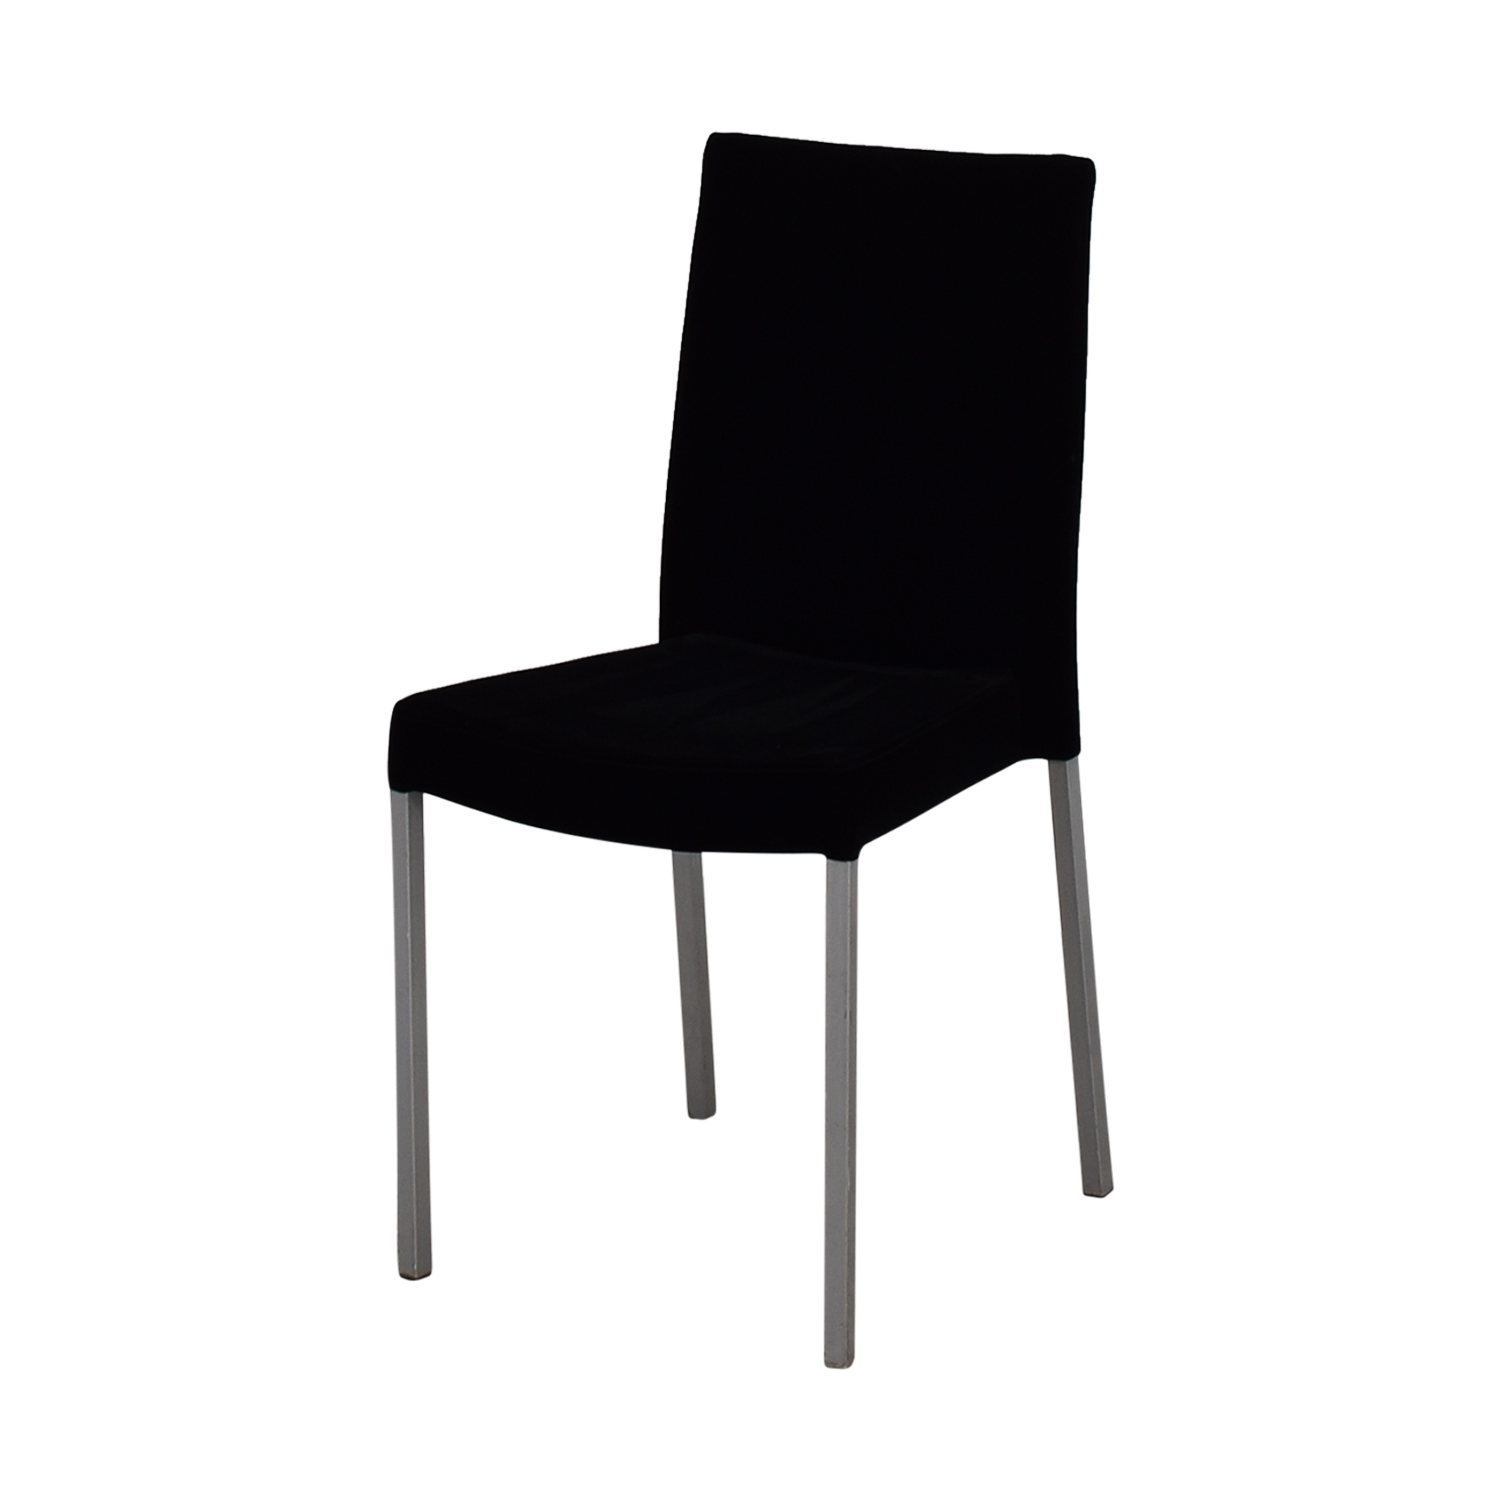 Great ... Modern Metal And Black Plush Fabric Chair Second Hand ...